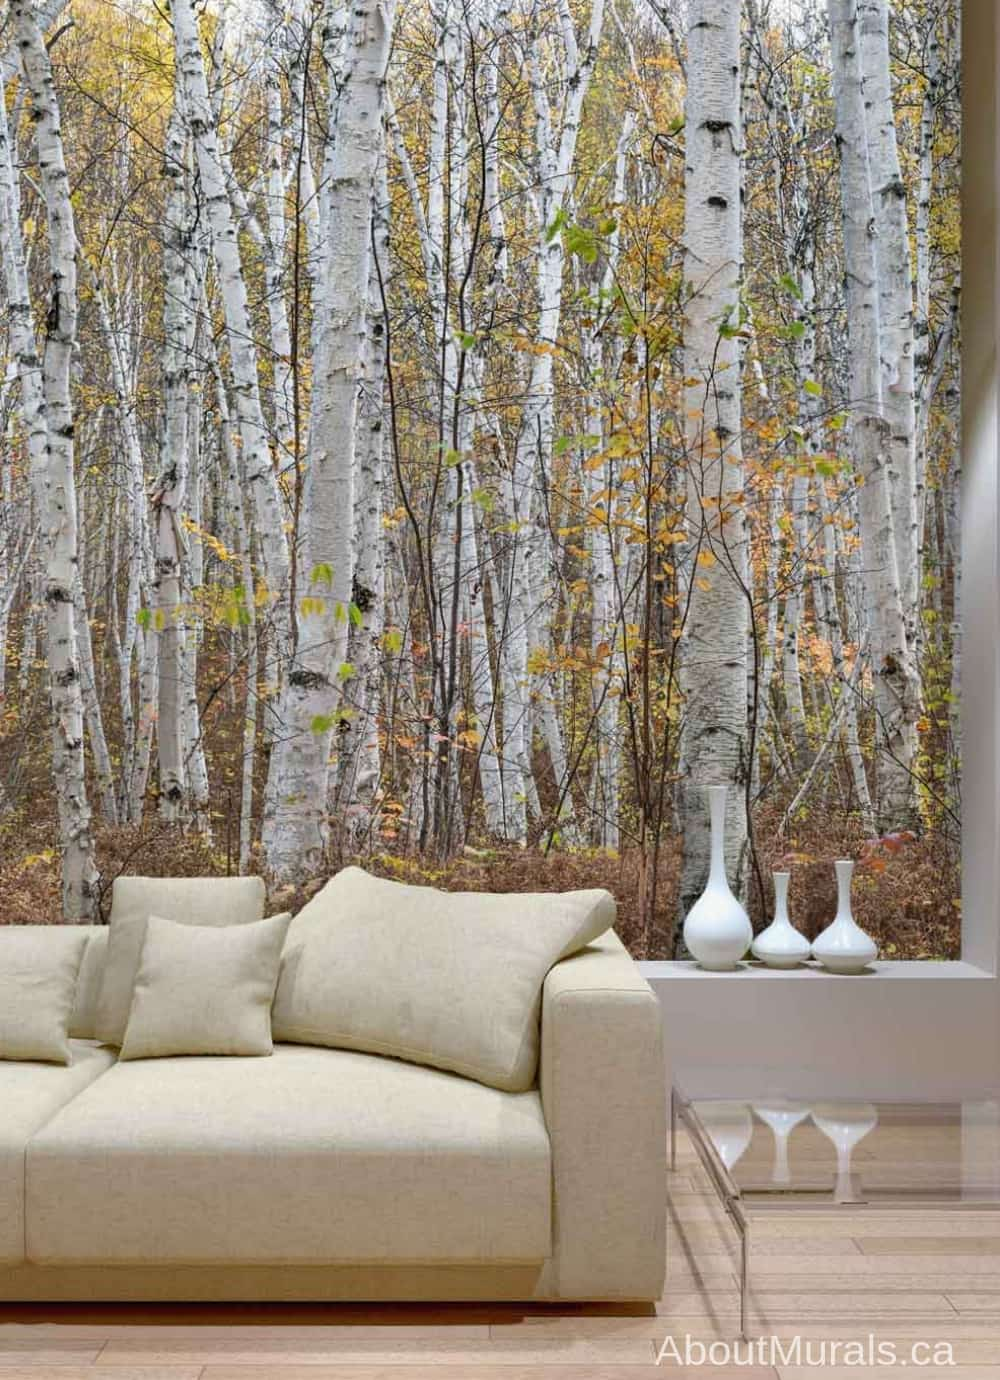 Infinite Birch Forest Wall Mural in a living room, sold by AboutMurals.ca